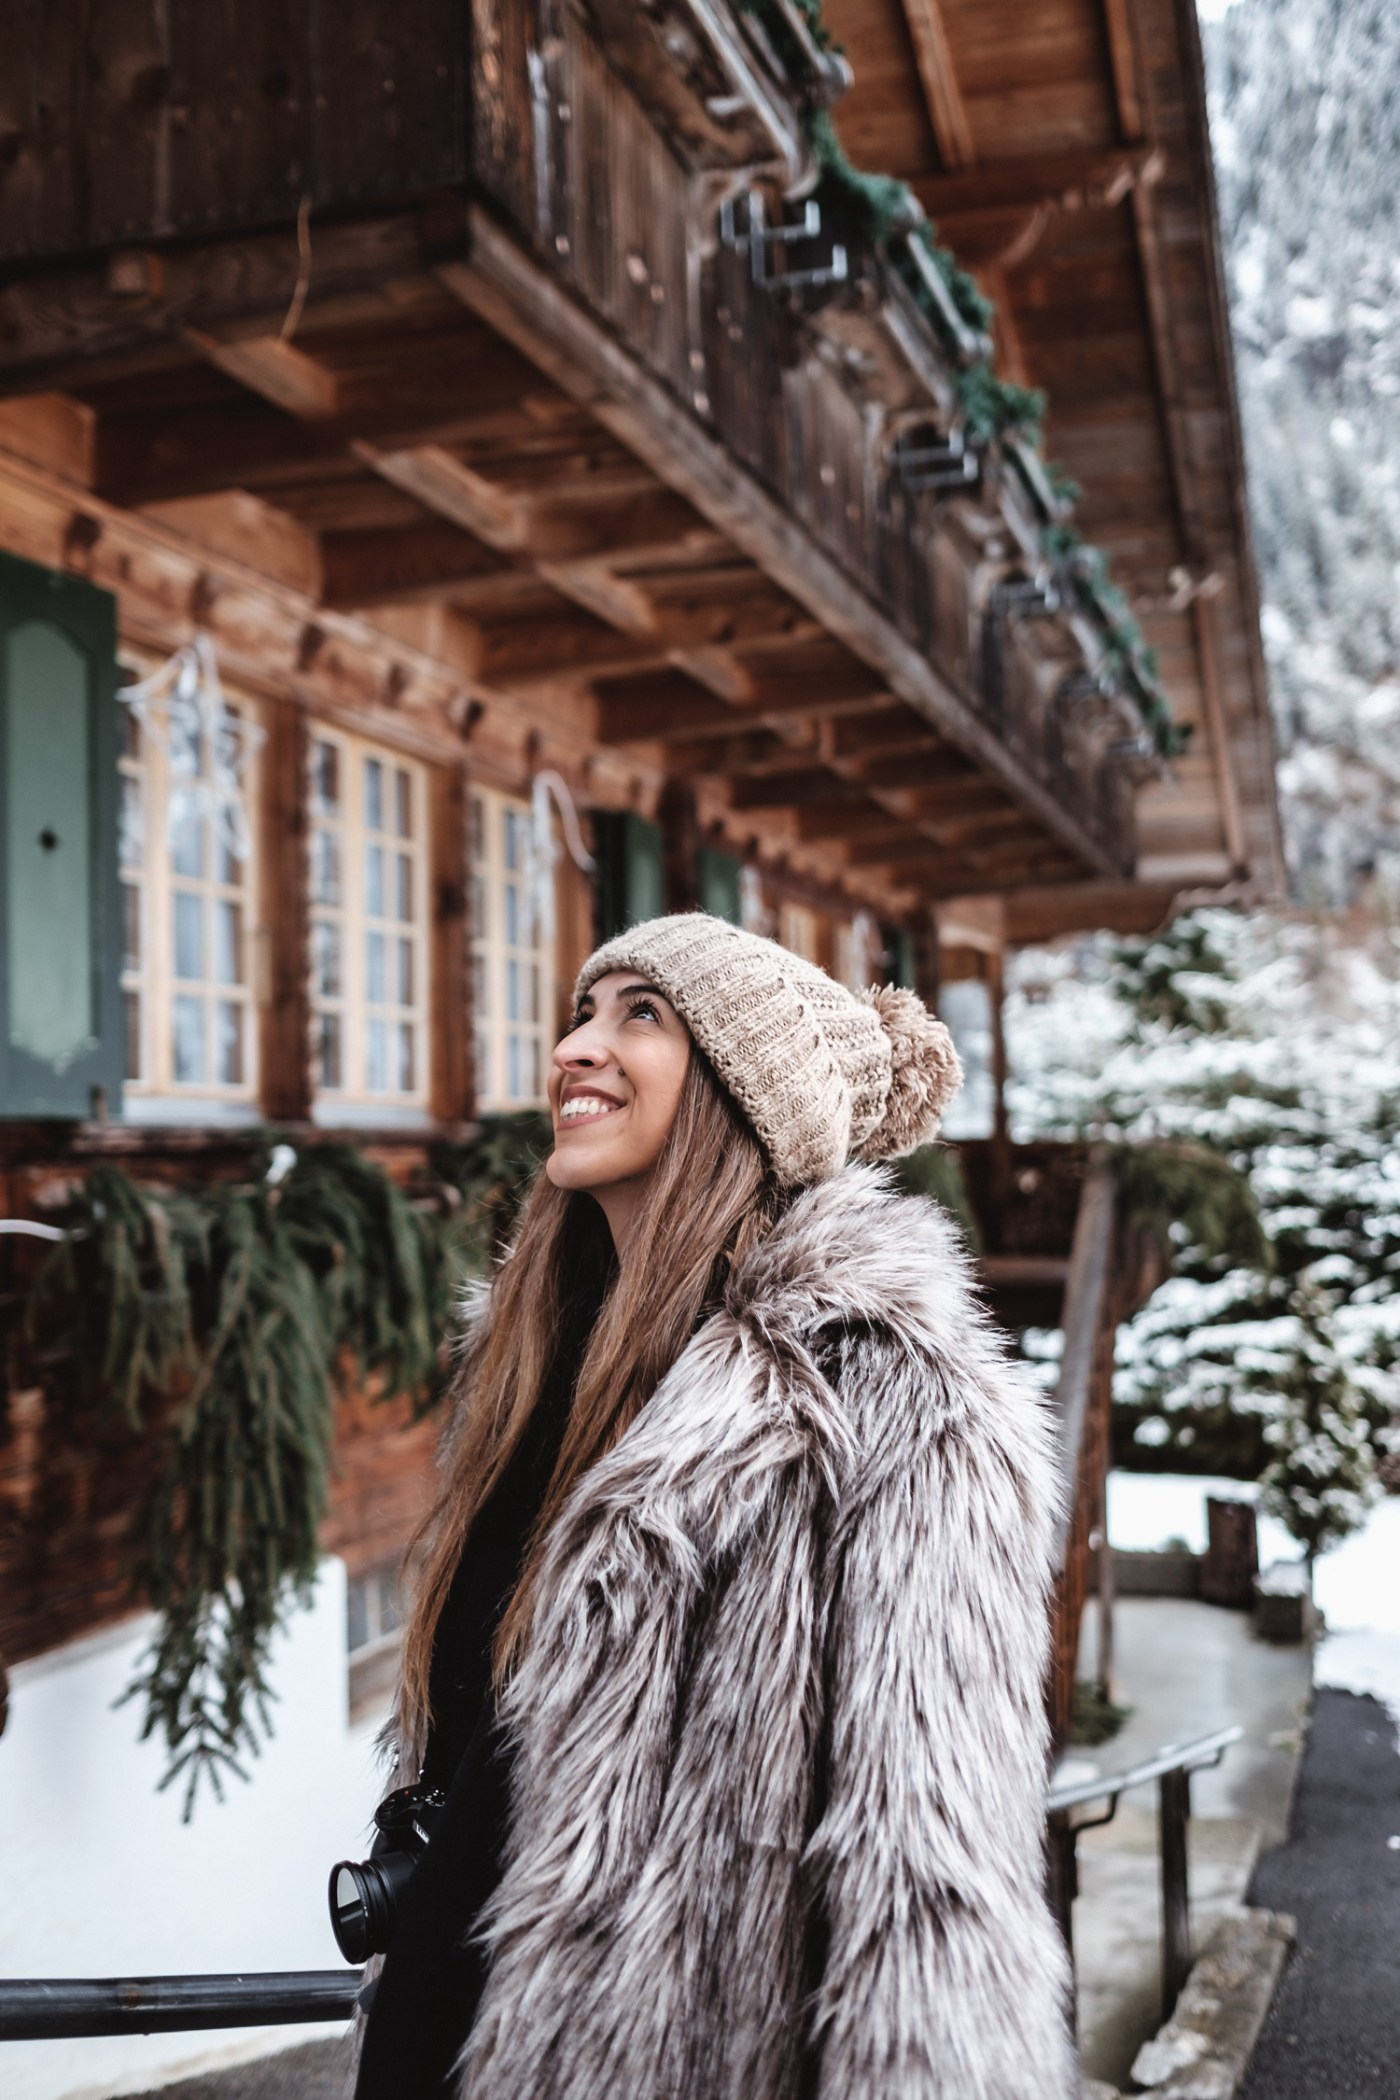 partimetravelers travel bloggers blog travel switzerland photography winter video ber interlaken lauternbrunen grindwald